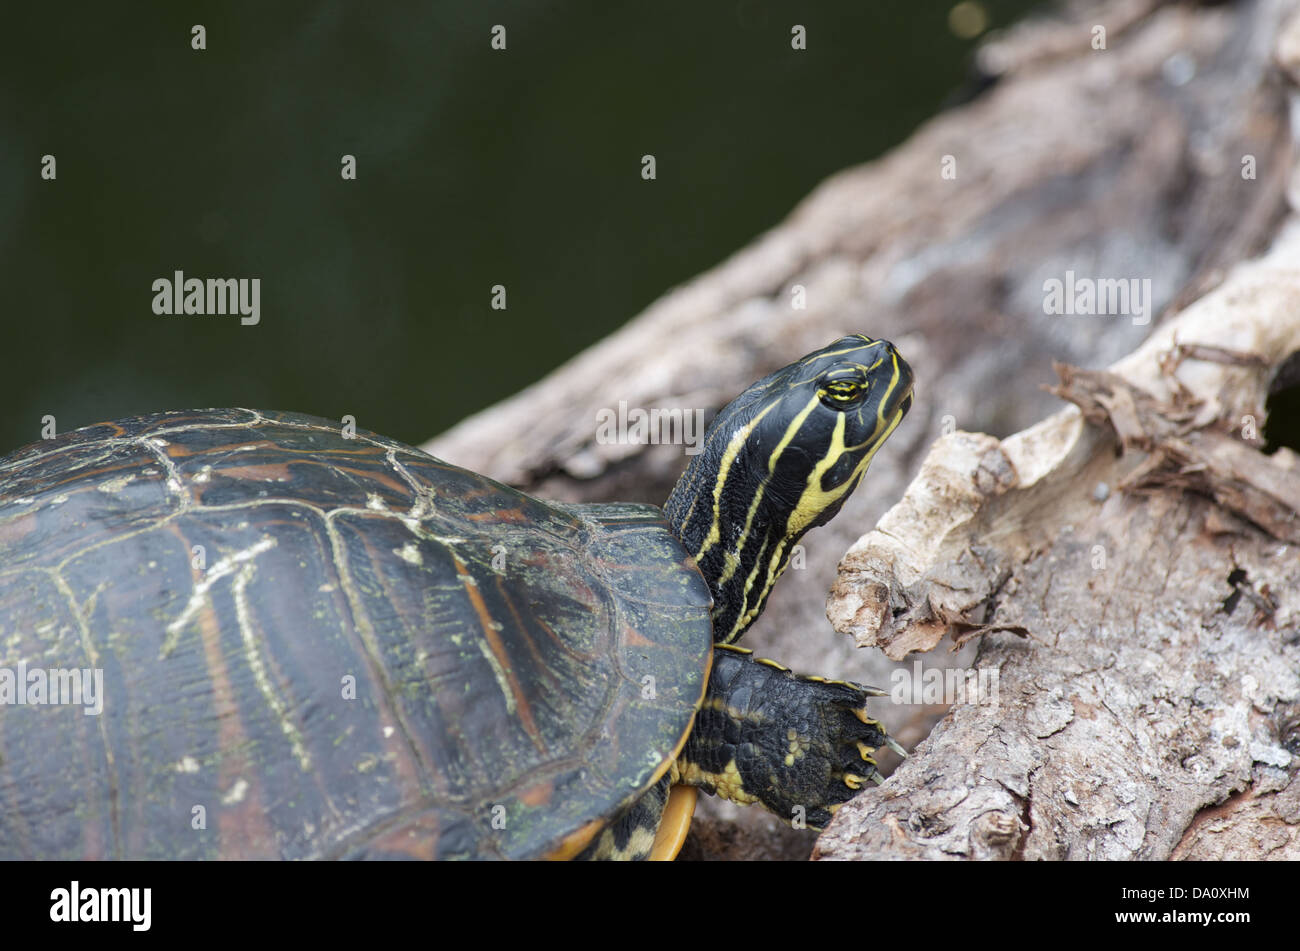 A Florida Red-bellied Cooter (Pseudemys nelsoni) on Anhinga Trail, Everglades National Park, Miami-Dade County, Stock Photo